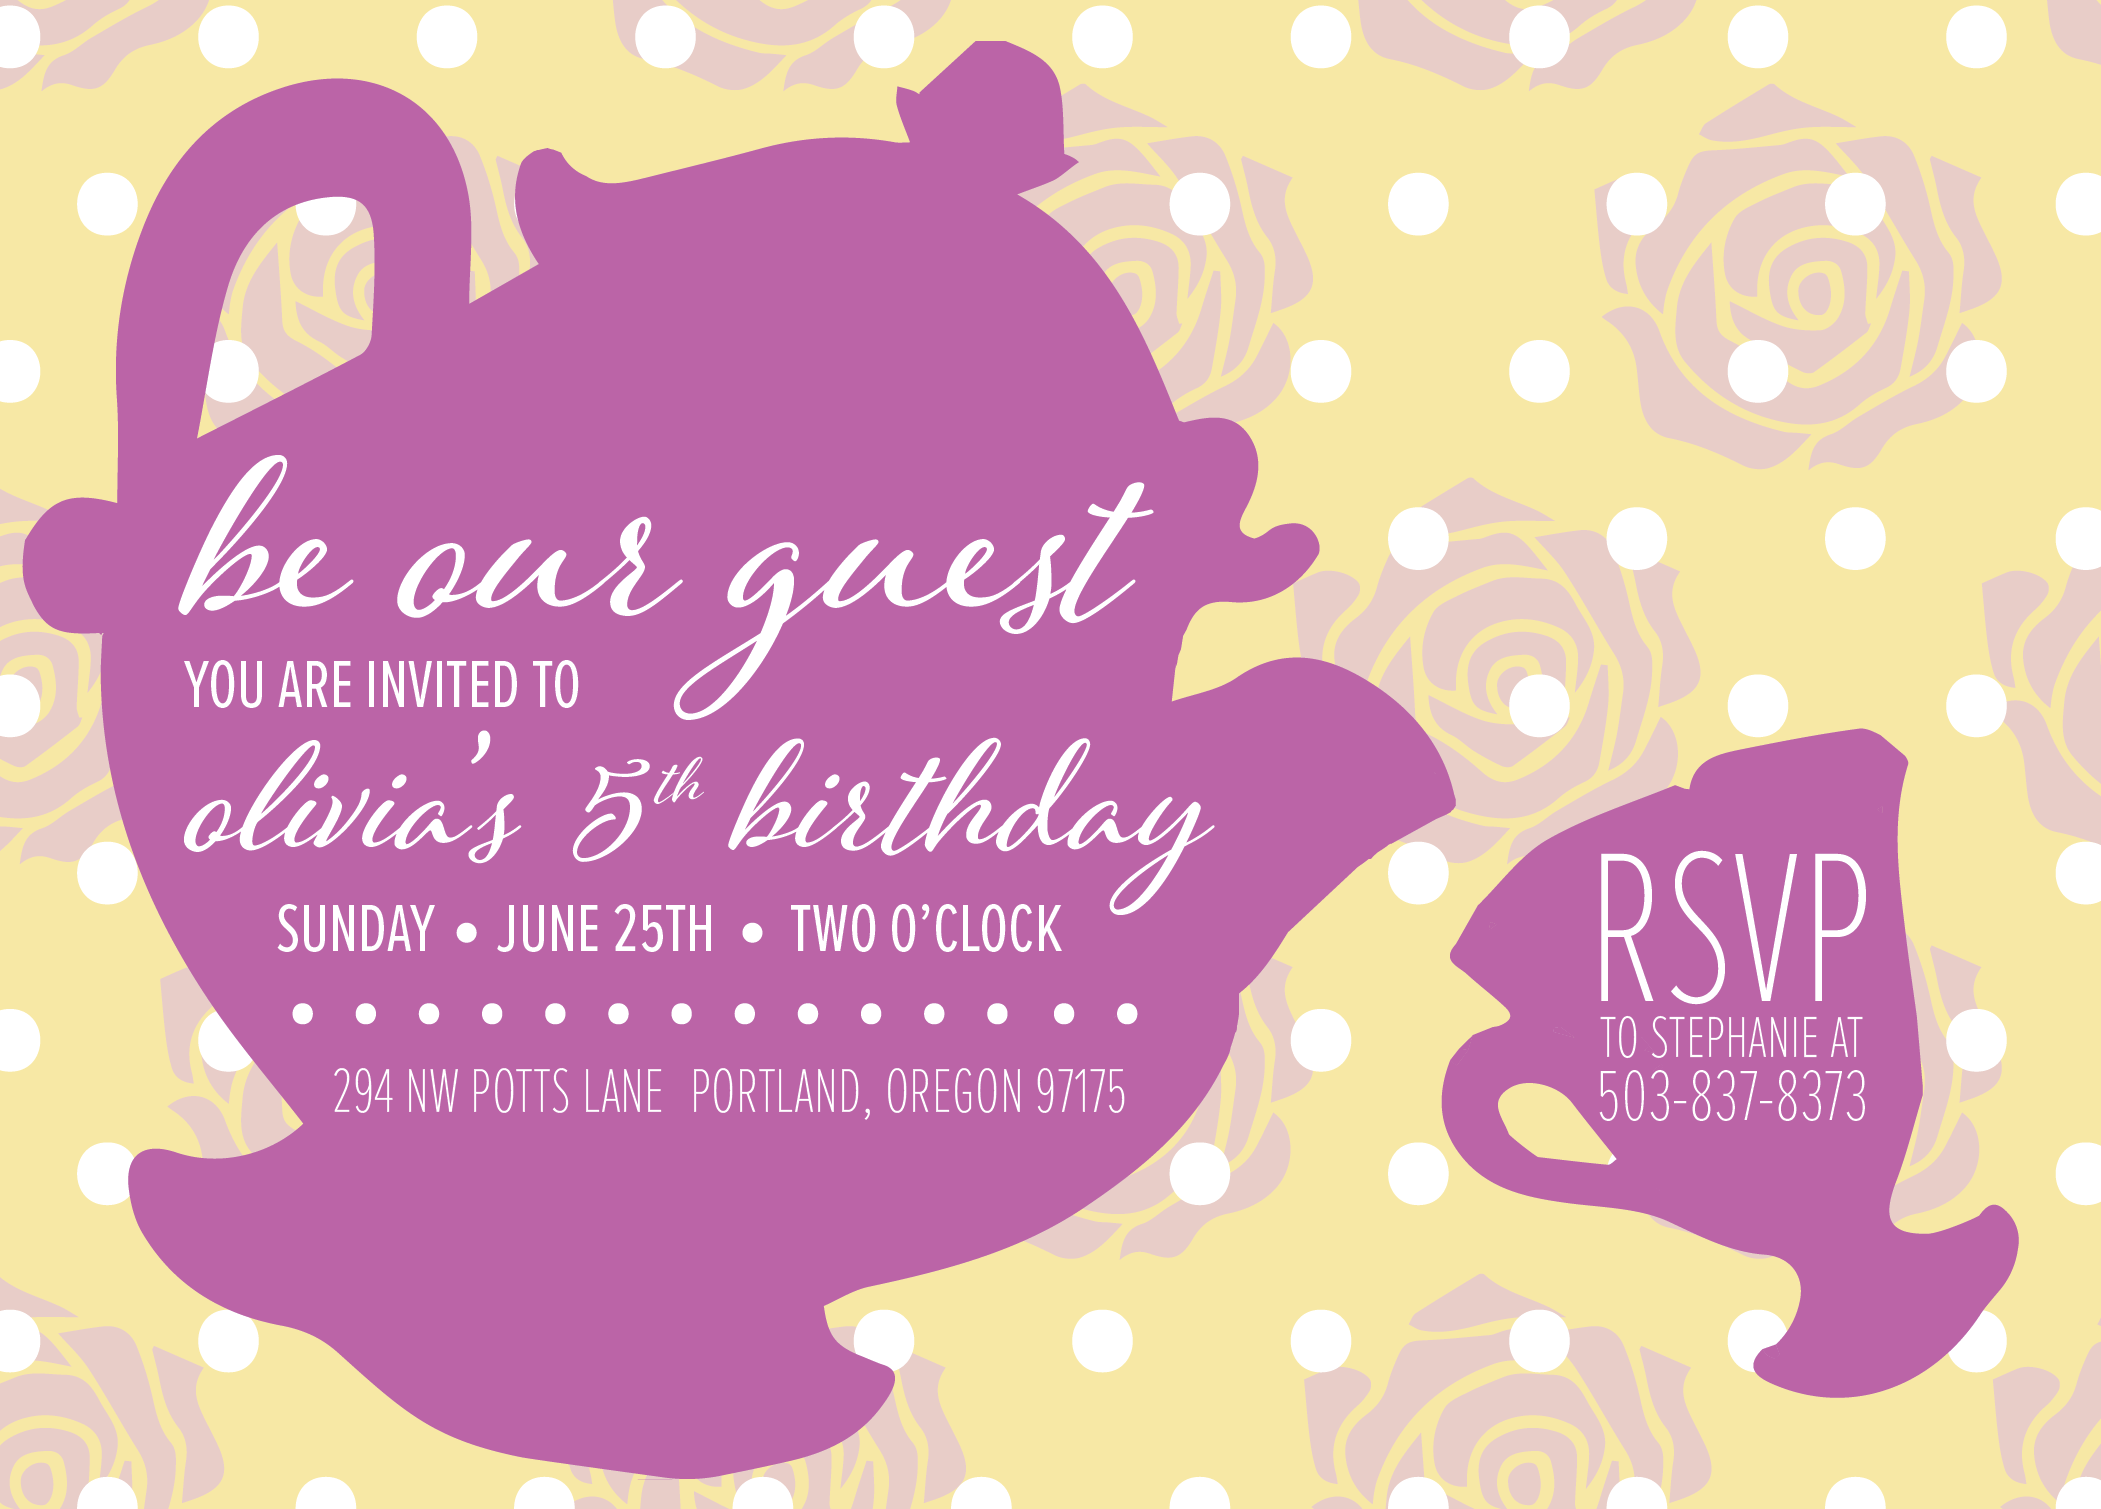 Be Our Guest Birthday Tea Party Invite / Beauty And The Beast Invitation / Princess Belle Bday / Mrs. Potts / Disney / Digital PDF File